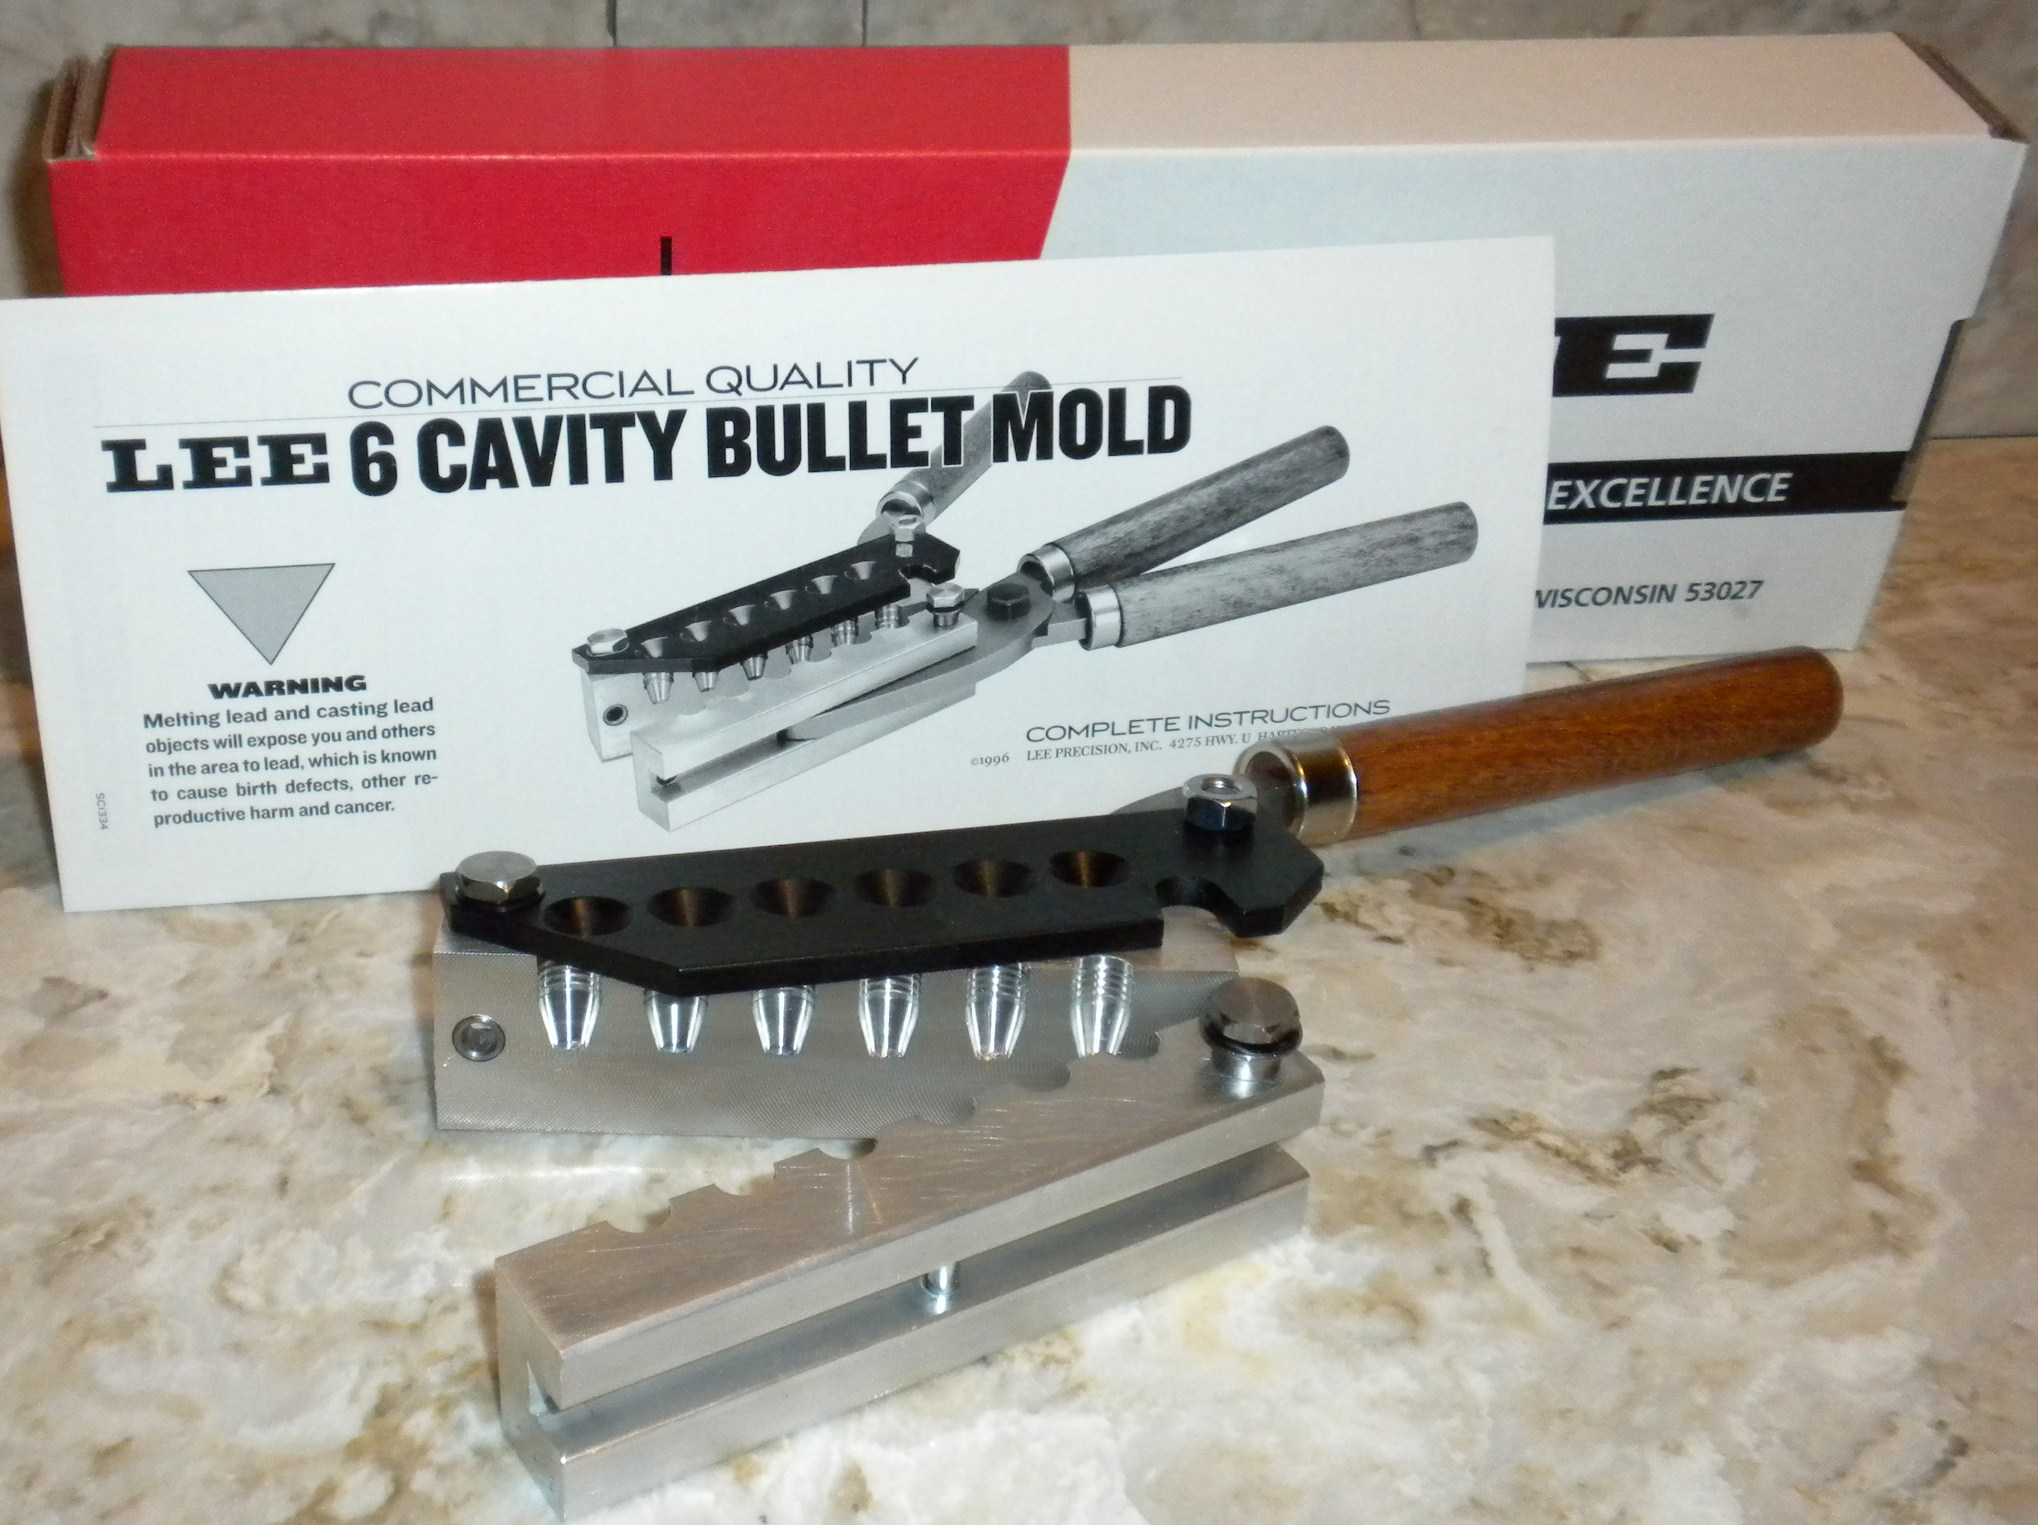 Lee Six Cavity Molds : MAD COMMANDO!, MADcommando your source for